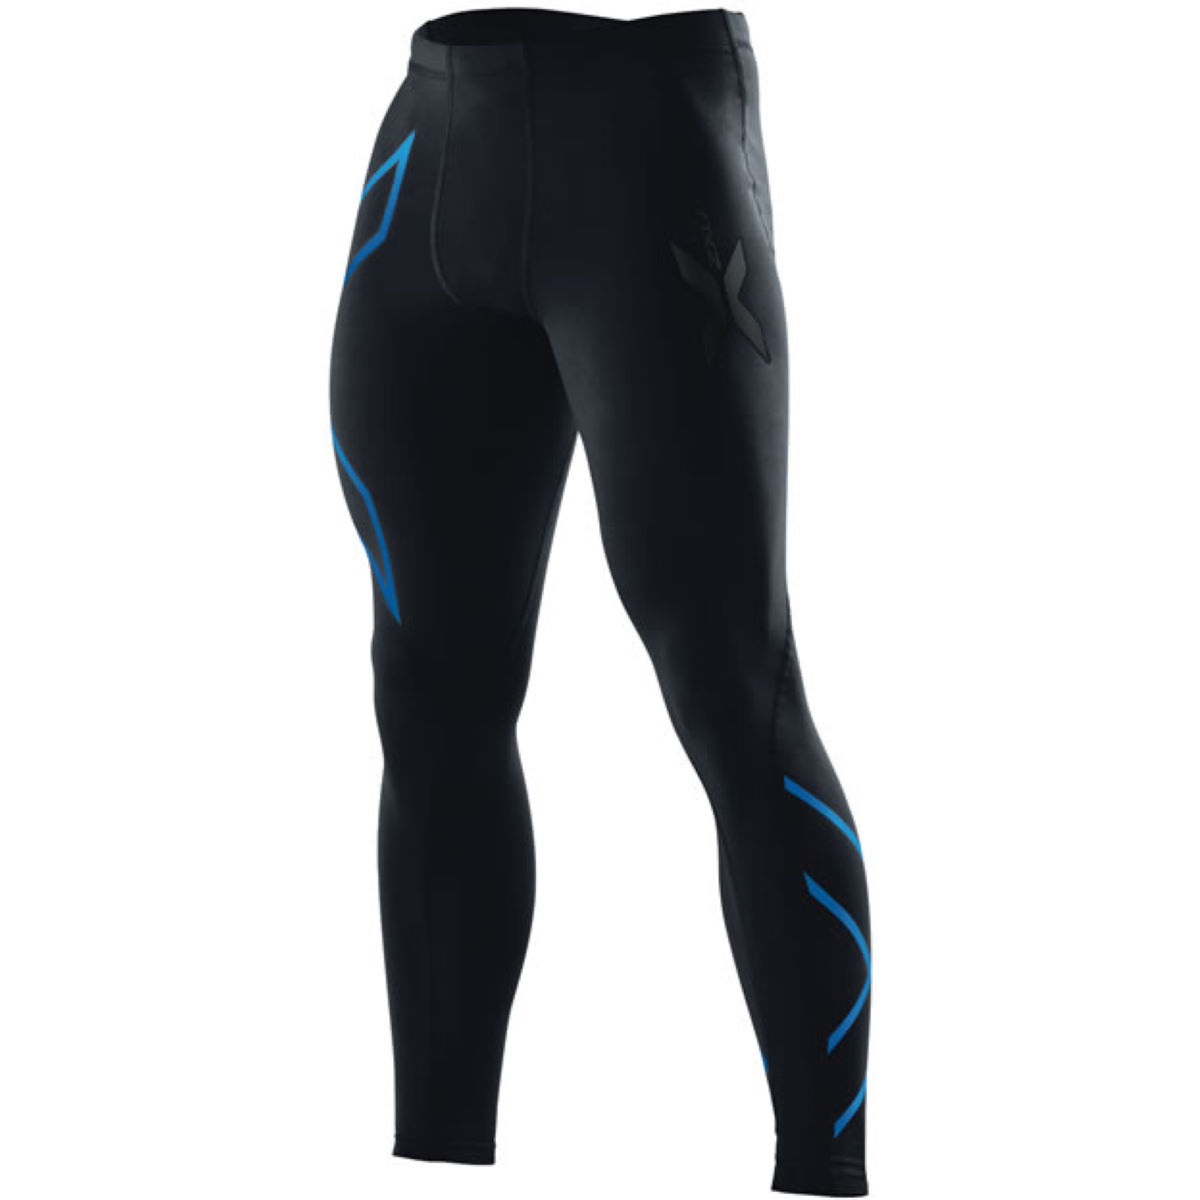 Collant 2XU Compression - XS Black/Prussian Blue Sous-vêtements compression